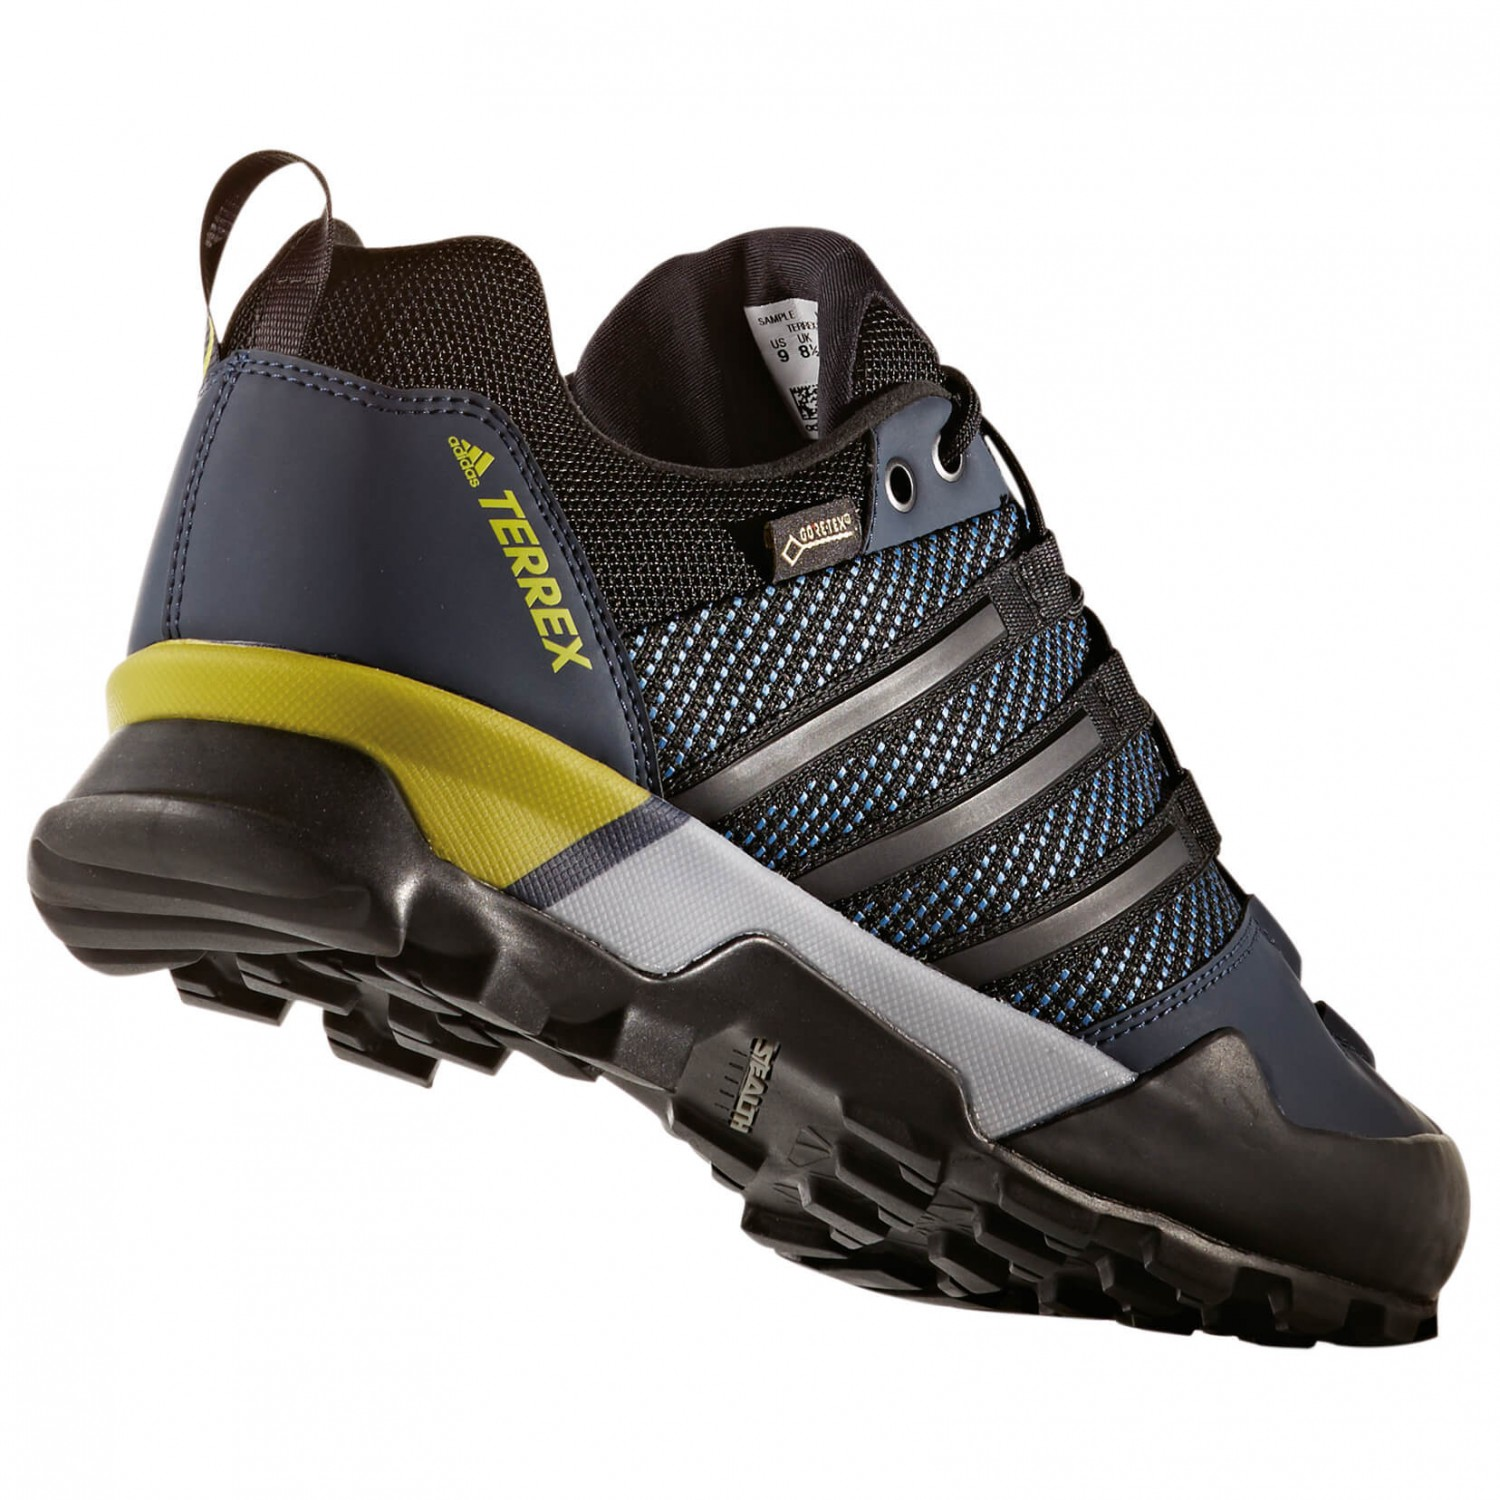 Adidas Terrex Scope GTX Approach Shoes Men's | Buy online